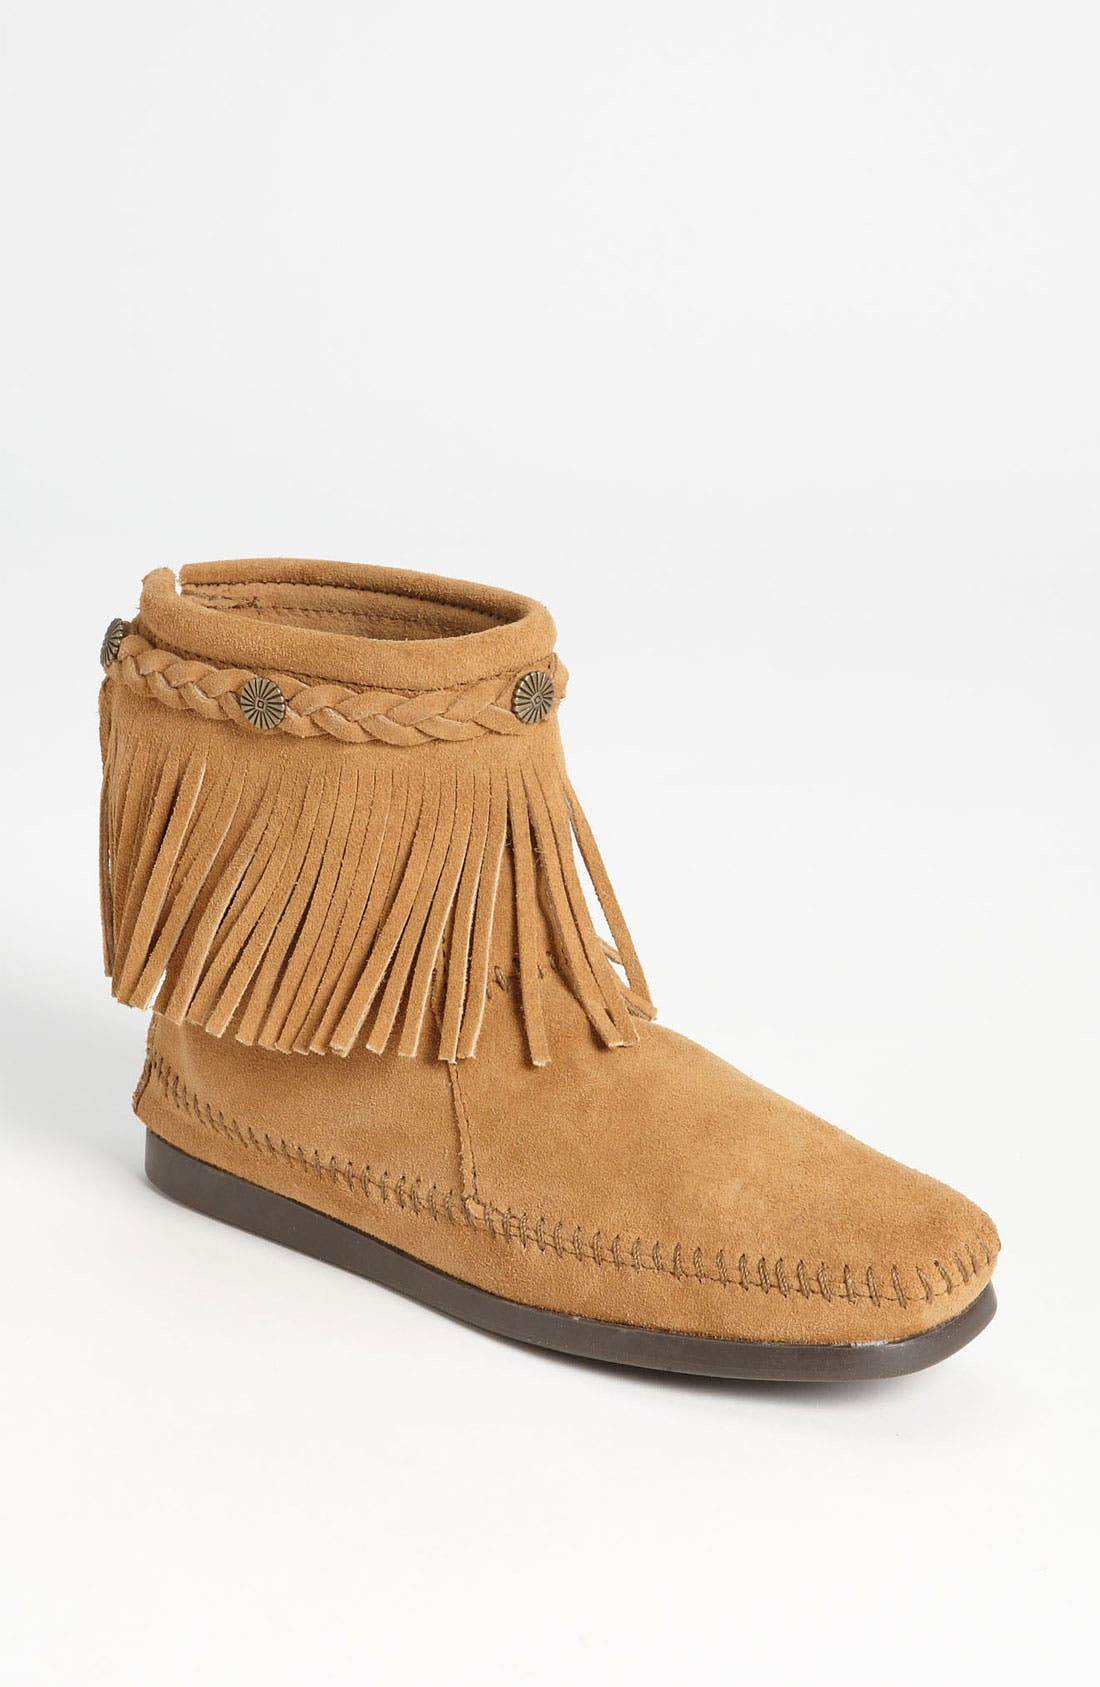 Alternate Image 1 Selected - Minnetonka Fringed Moccasin Bootie (Women)